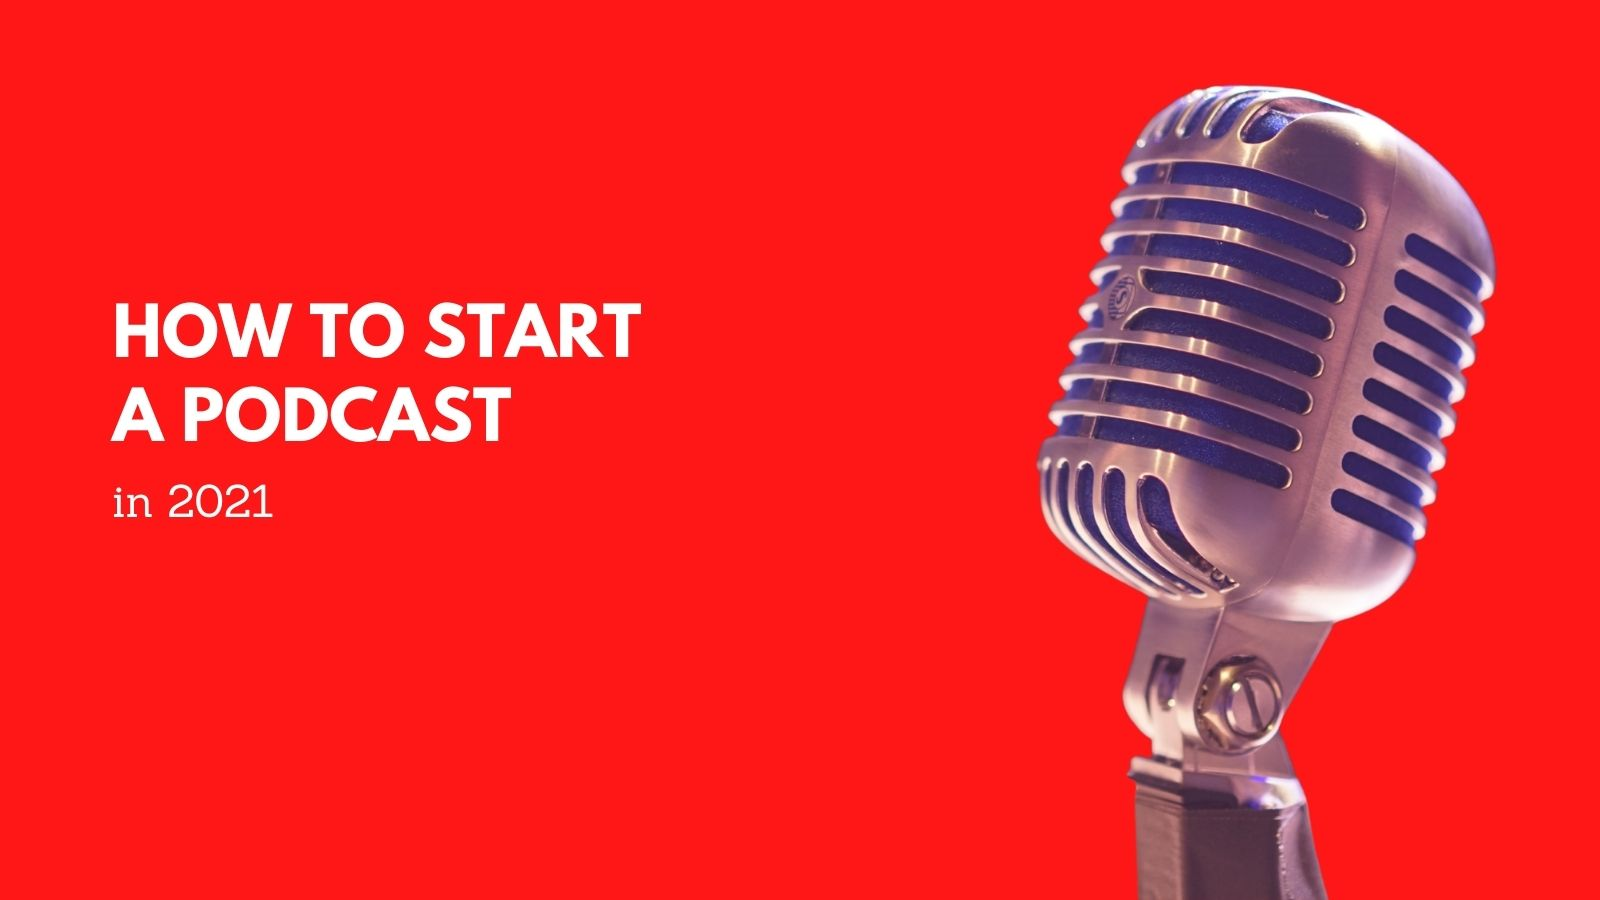 How to start a podcast in 2021